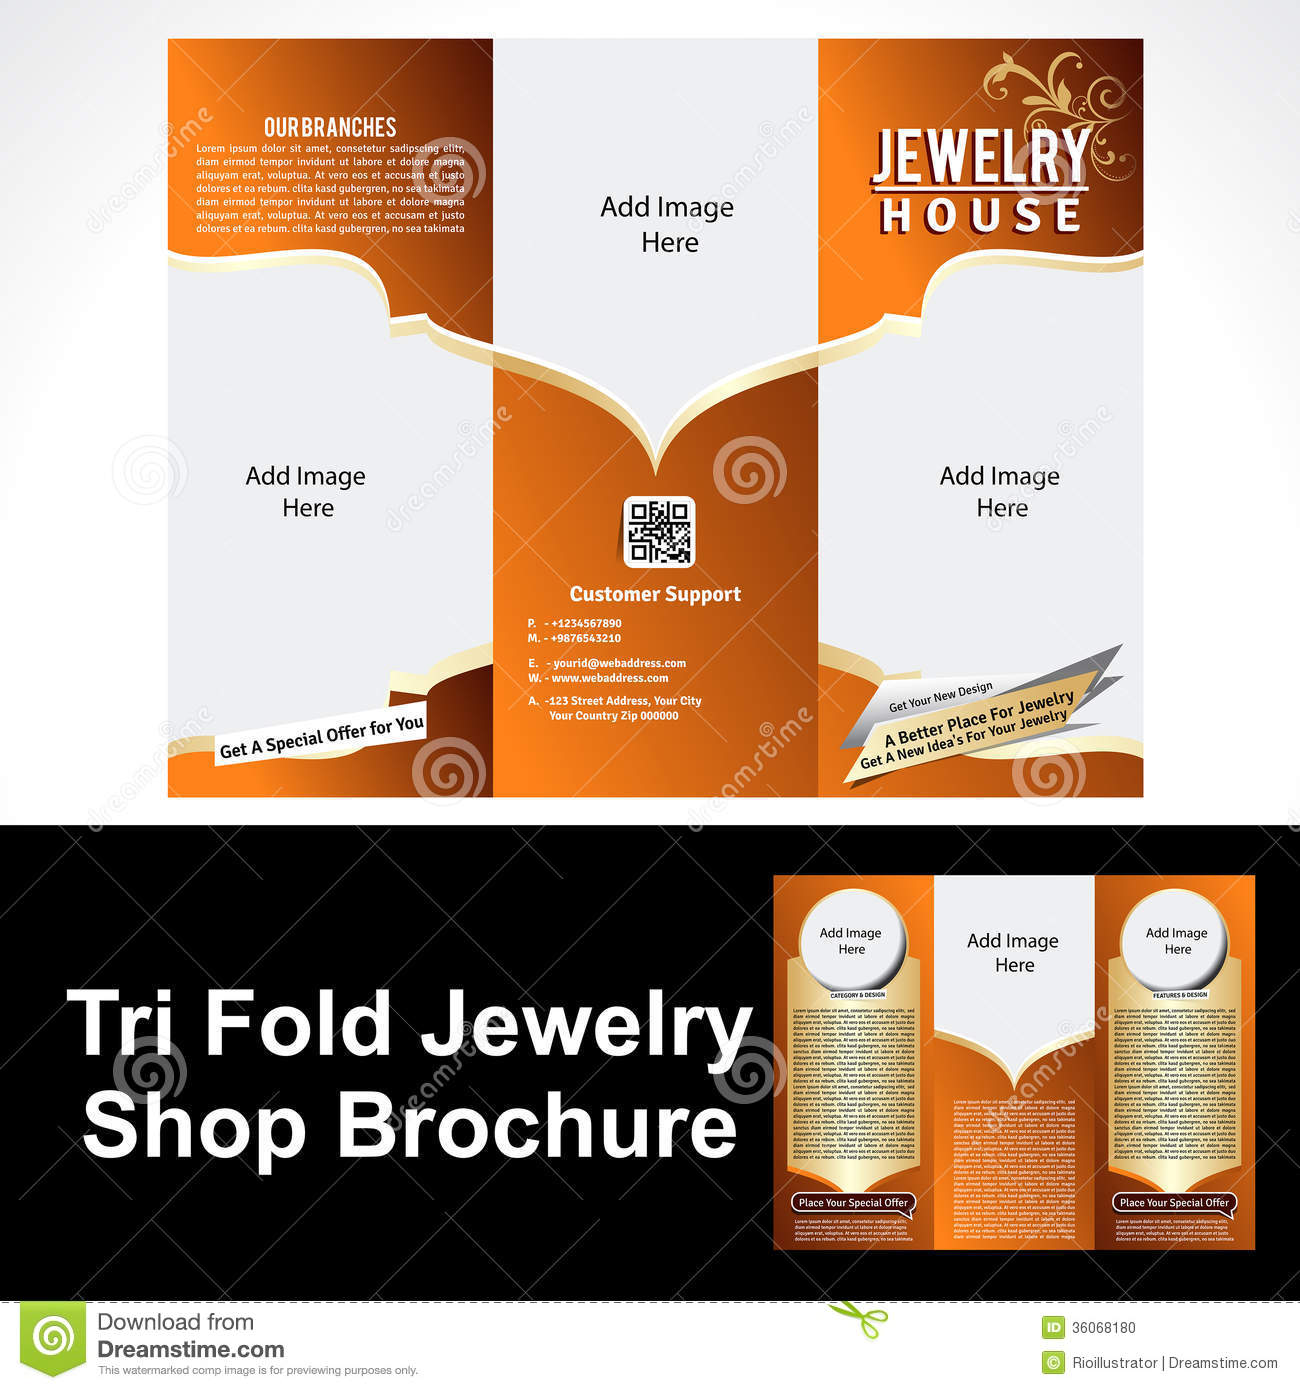 Tril Fold Jewelry Shop Brochure Stock Vector